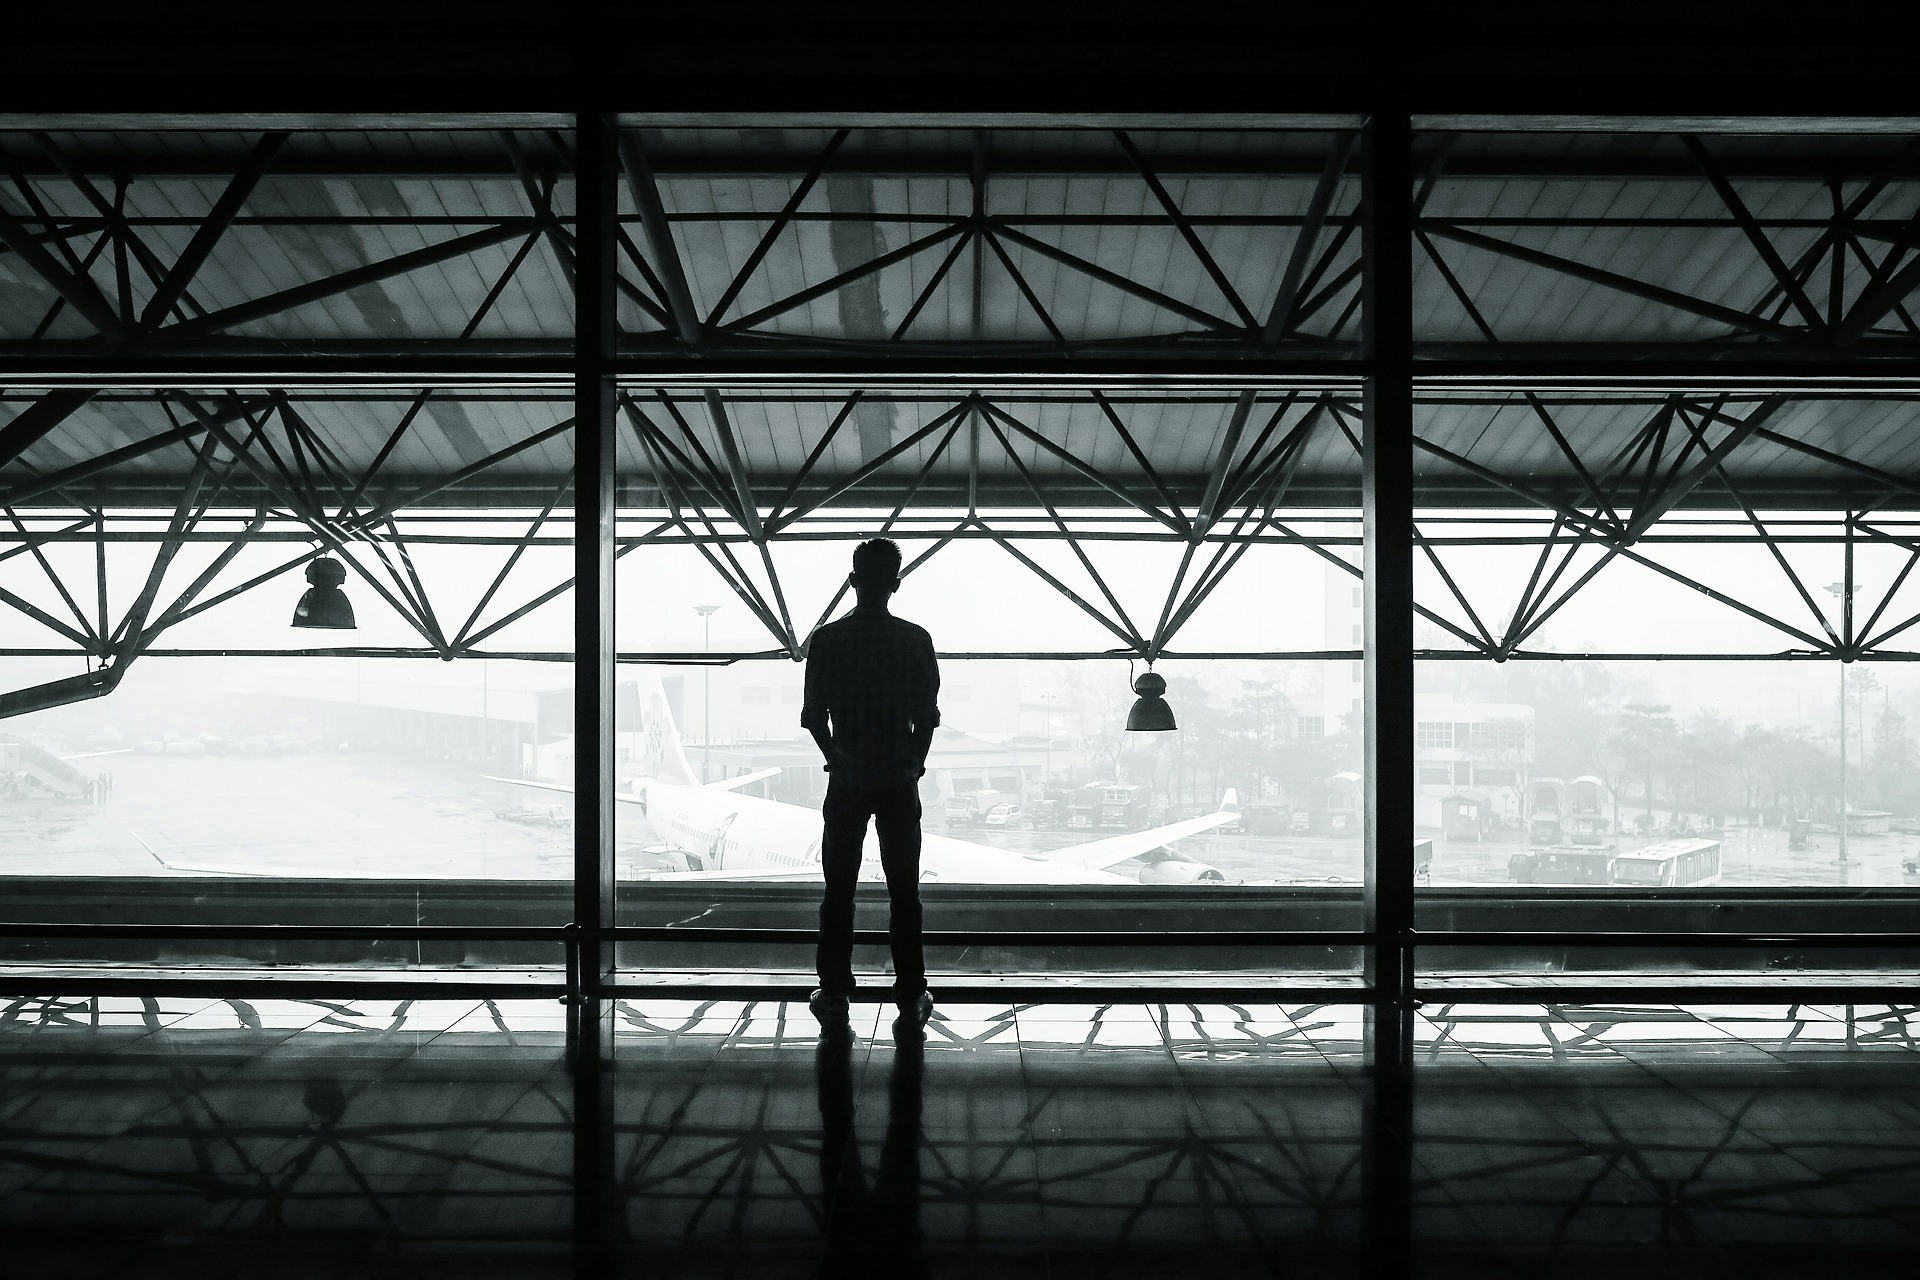 Man in Airport Window